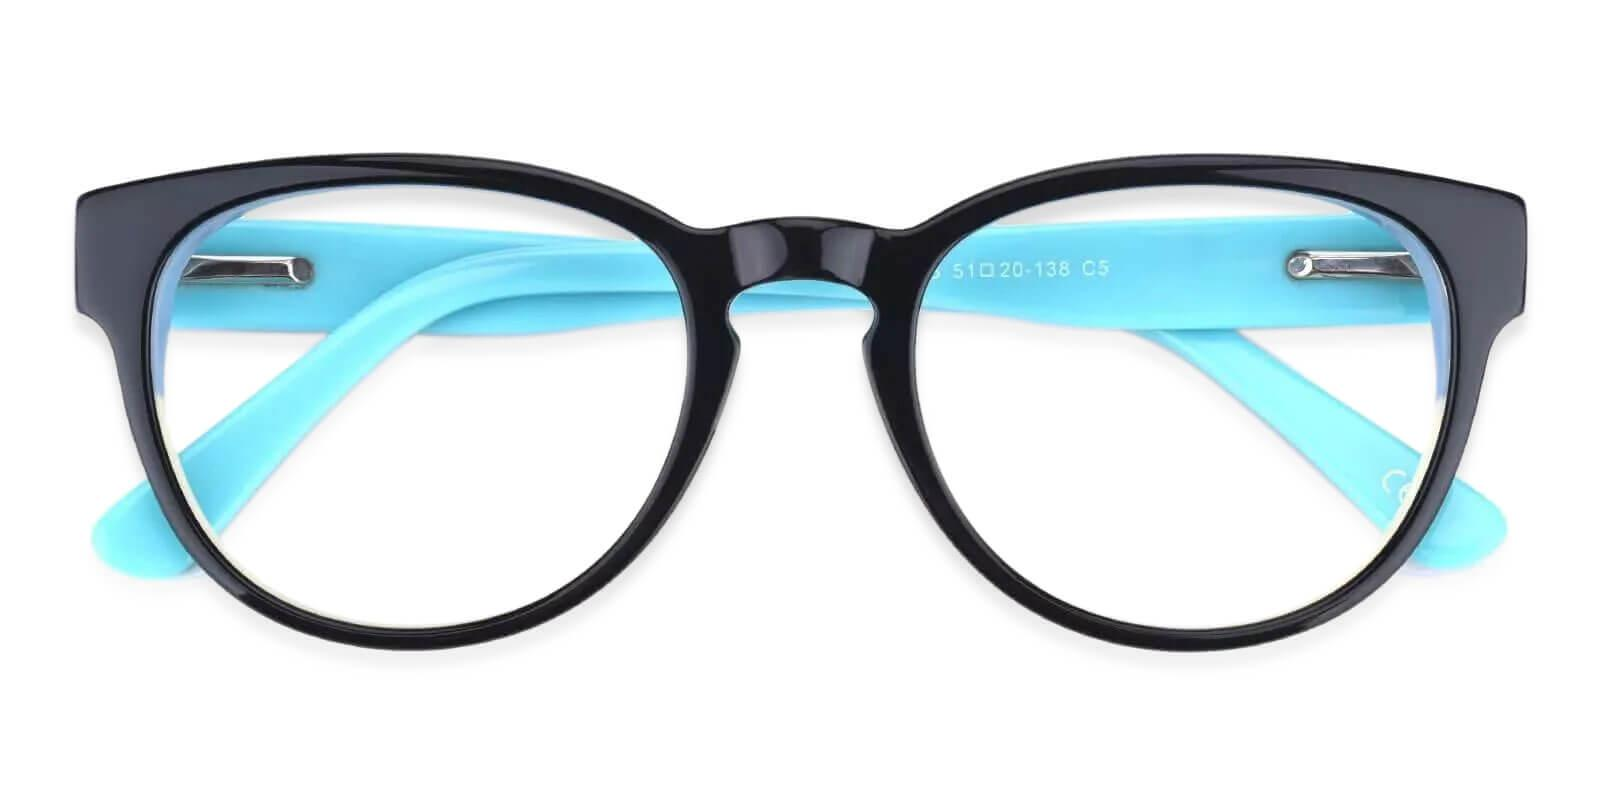 Aurora Blue Acetate Eyeglasses , Fashion , SpringHinges , UniversalBridgeFit Frames from ABBE Glasses